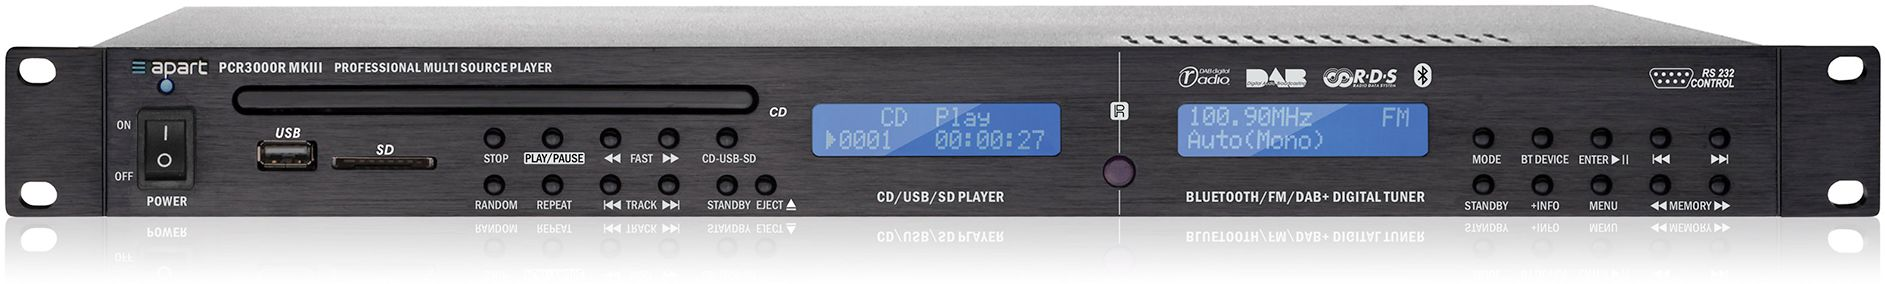 Apart PCR3000RMKIII wieloformatowy odtwarzacz audio DAB & FM RDS/CD/USB/SD-card /Bluetooth